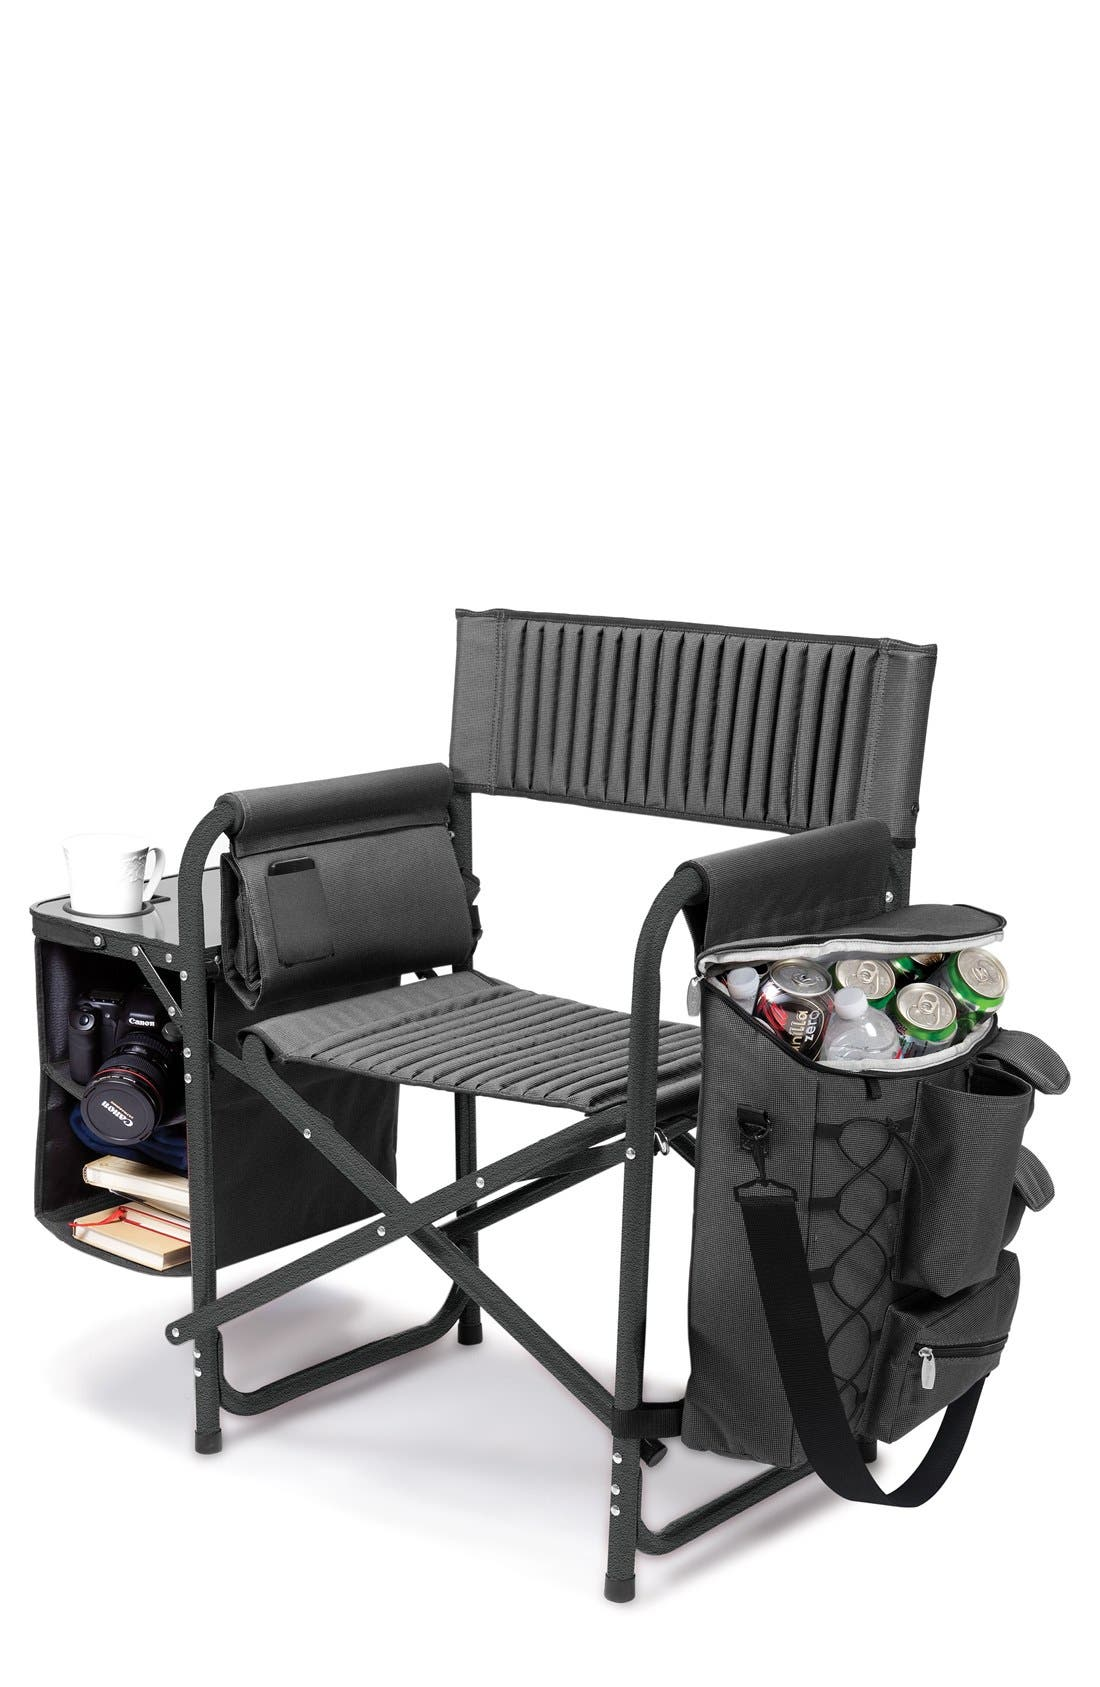 ONIVA Fusion Lawn Chair,                             Main thumbnail 1, color,                             BLACK